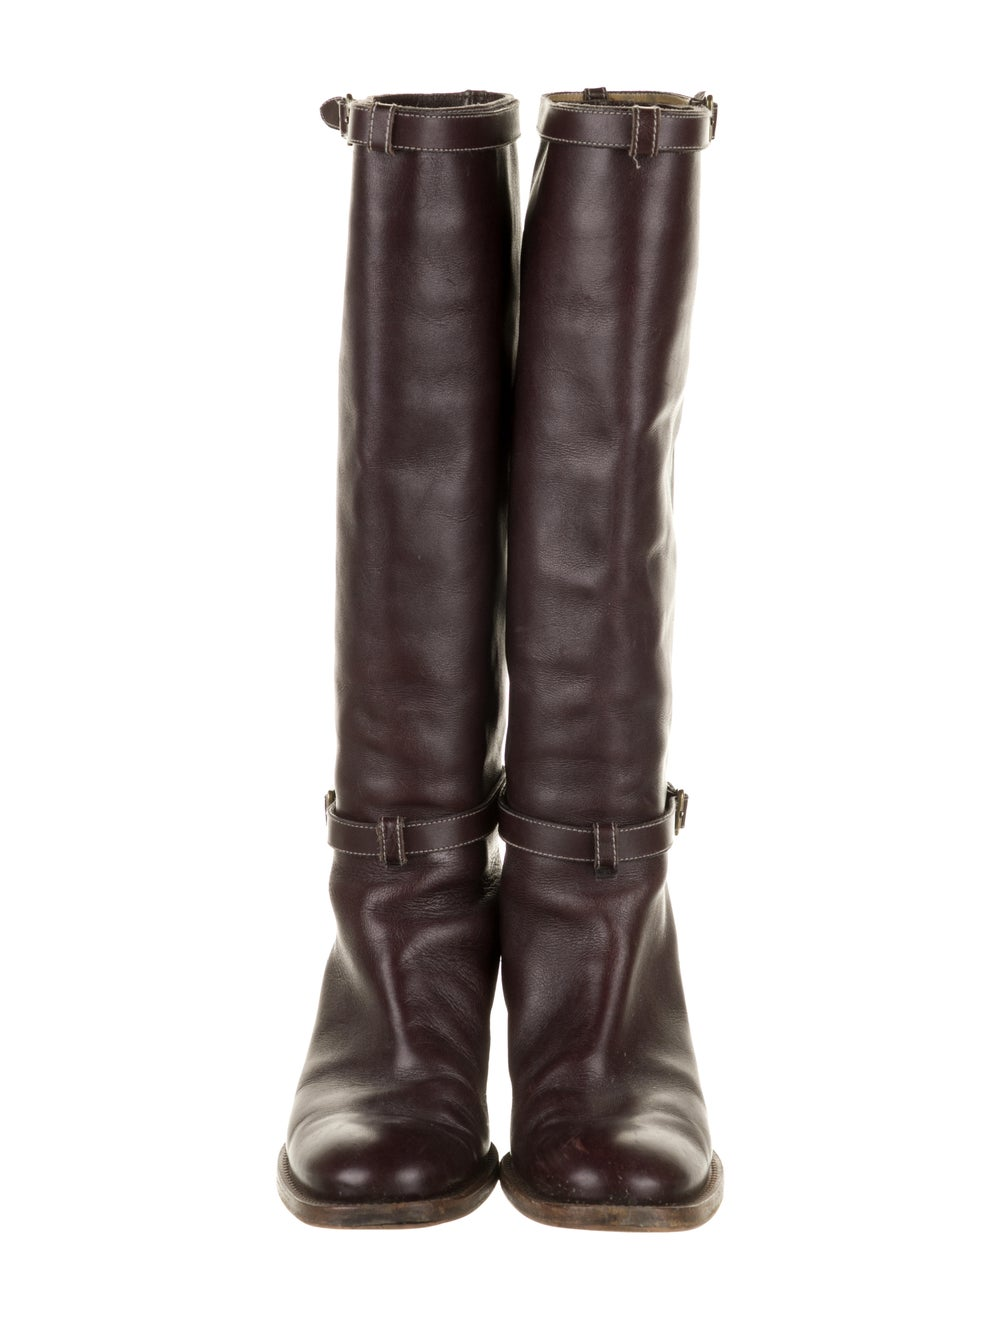 Chloé Leather Knee-High Boots Brown - image 3